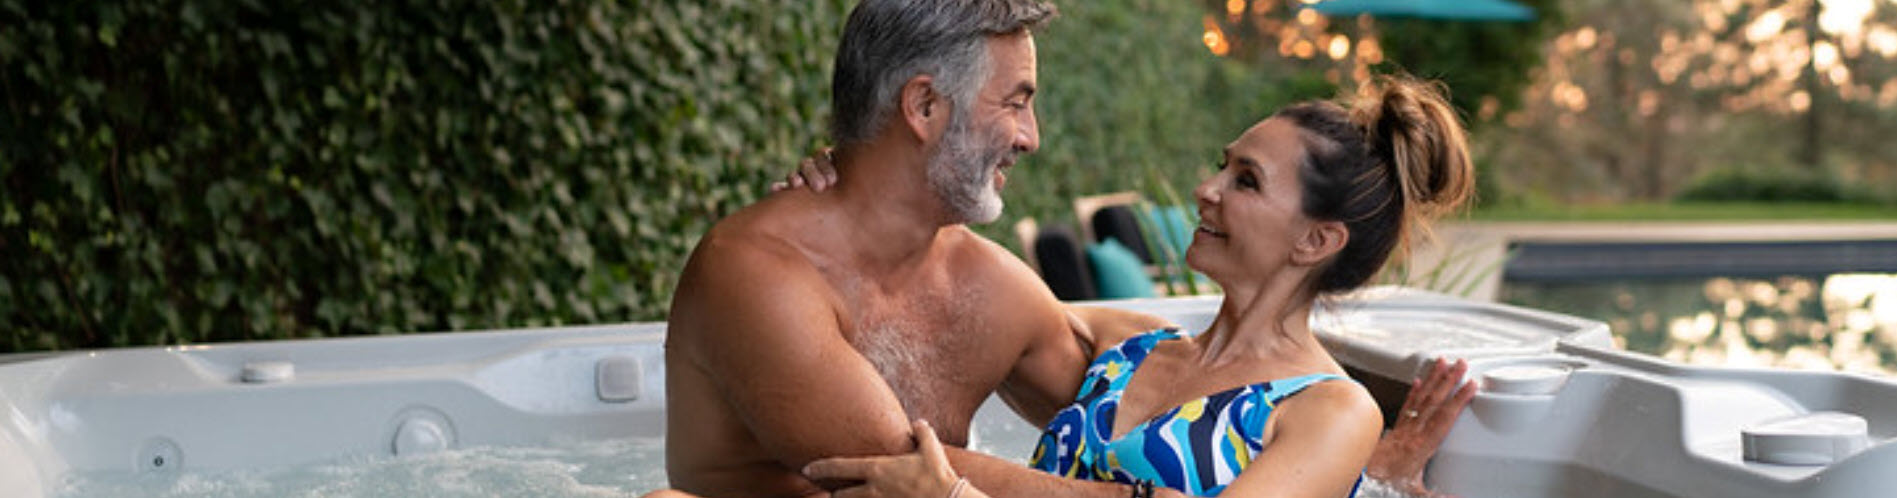 Des Moines Hot Tubs, Swim Spas, Hot Spring Spas of Iowa Supports Romance Awareness Month